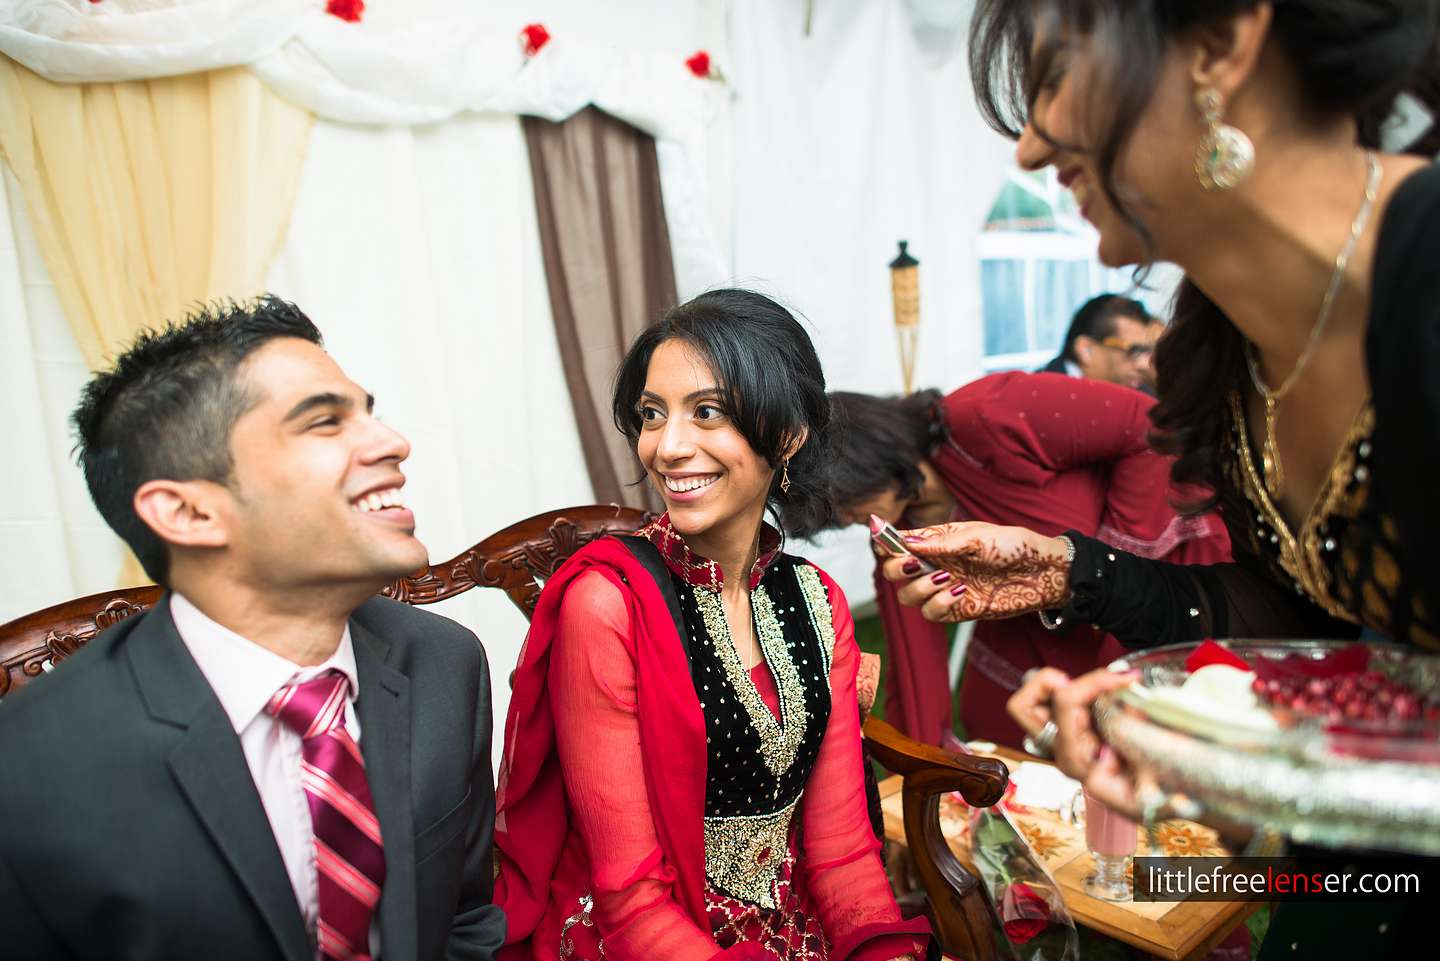 tn_alisha&ayaz_engagementparty_16